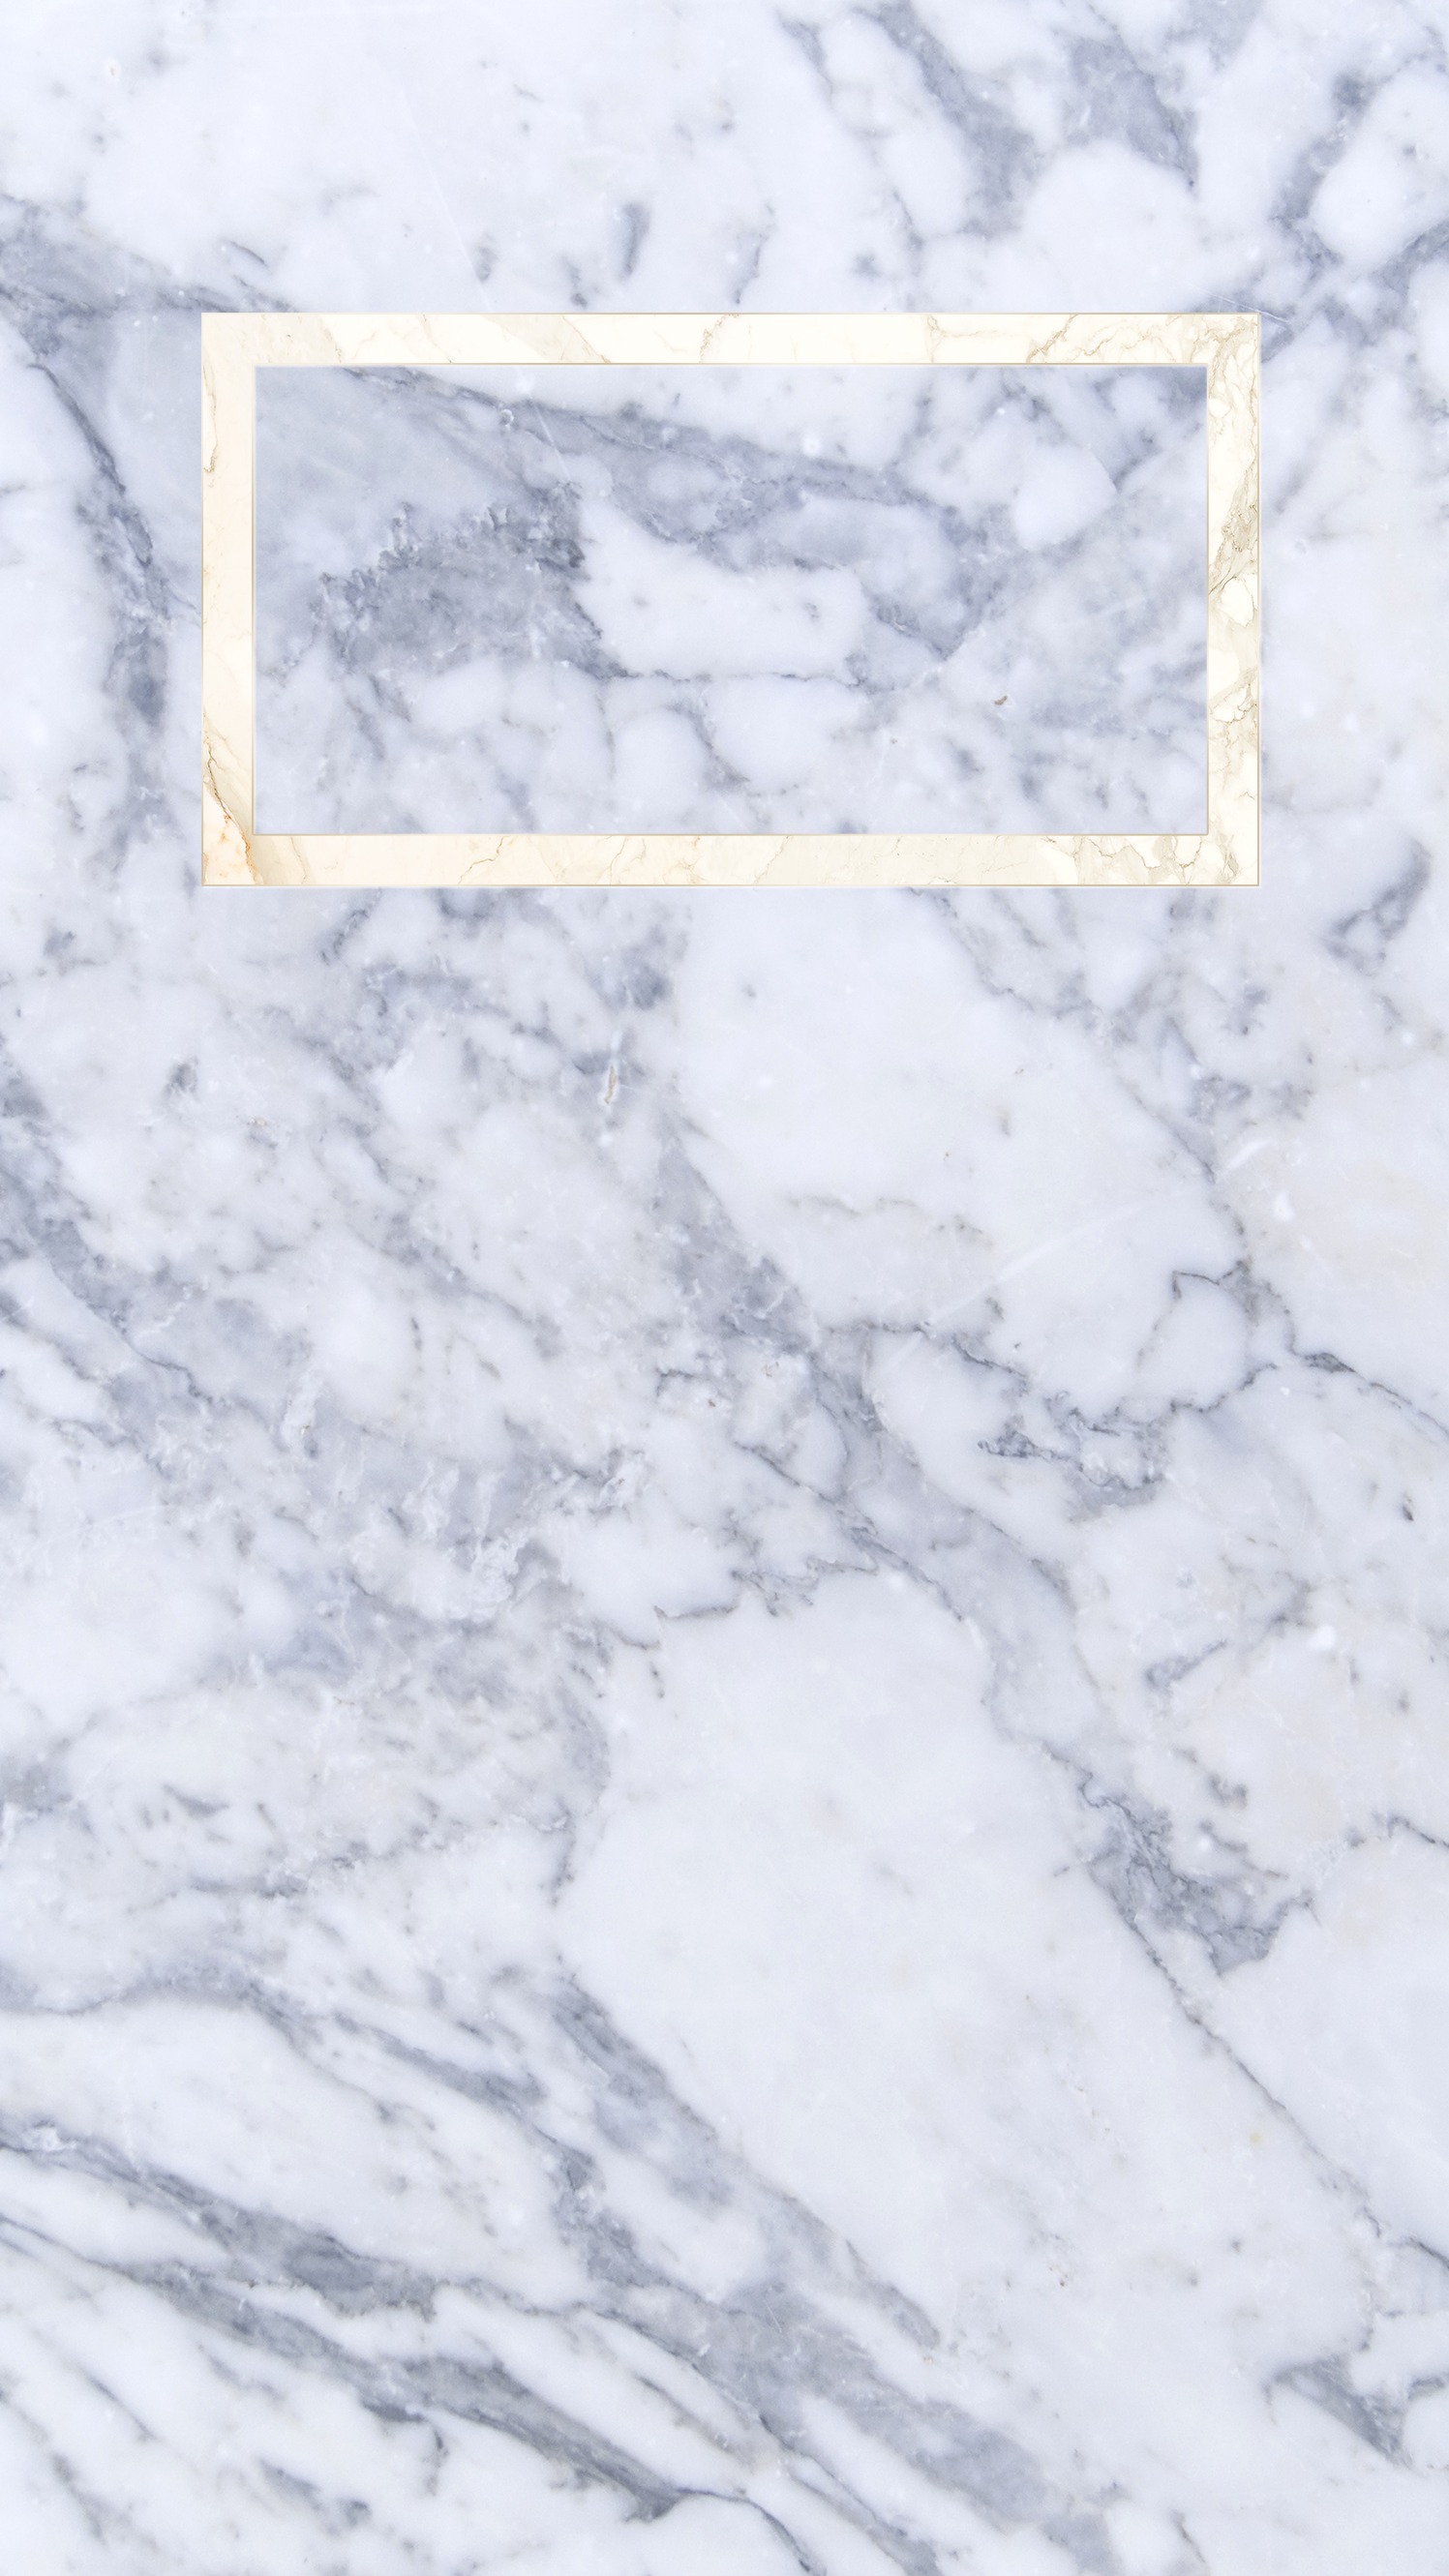 Popular Wallpaper Marble Background - 81116691232c62a7283117487a38db2d  Best Photo Reference_751023.png